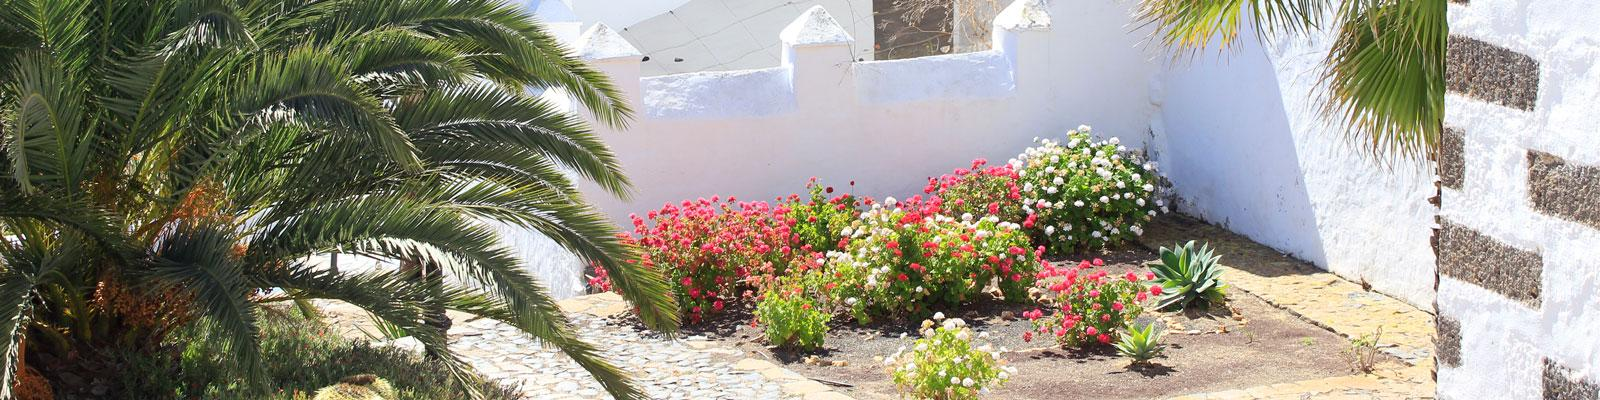 Fuerteventura Island - Tour Excursion